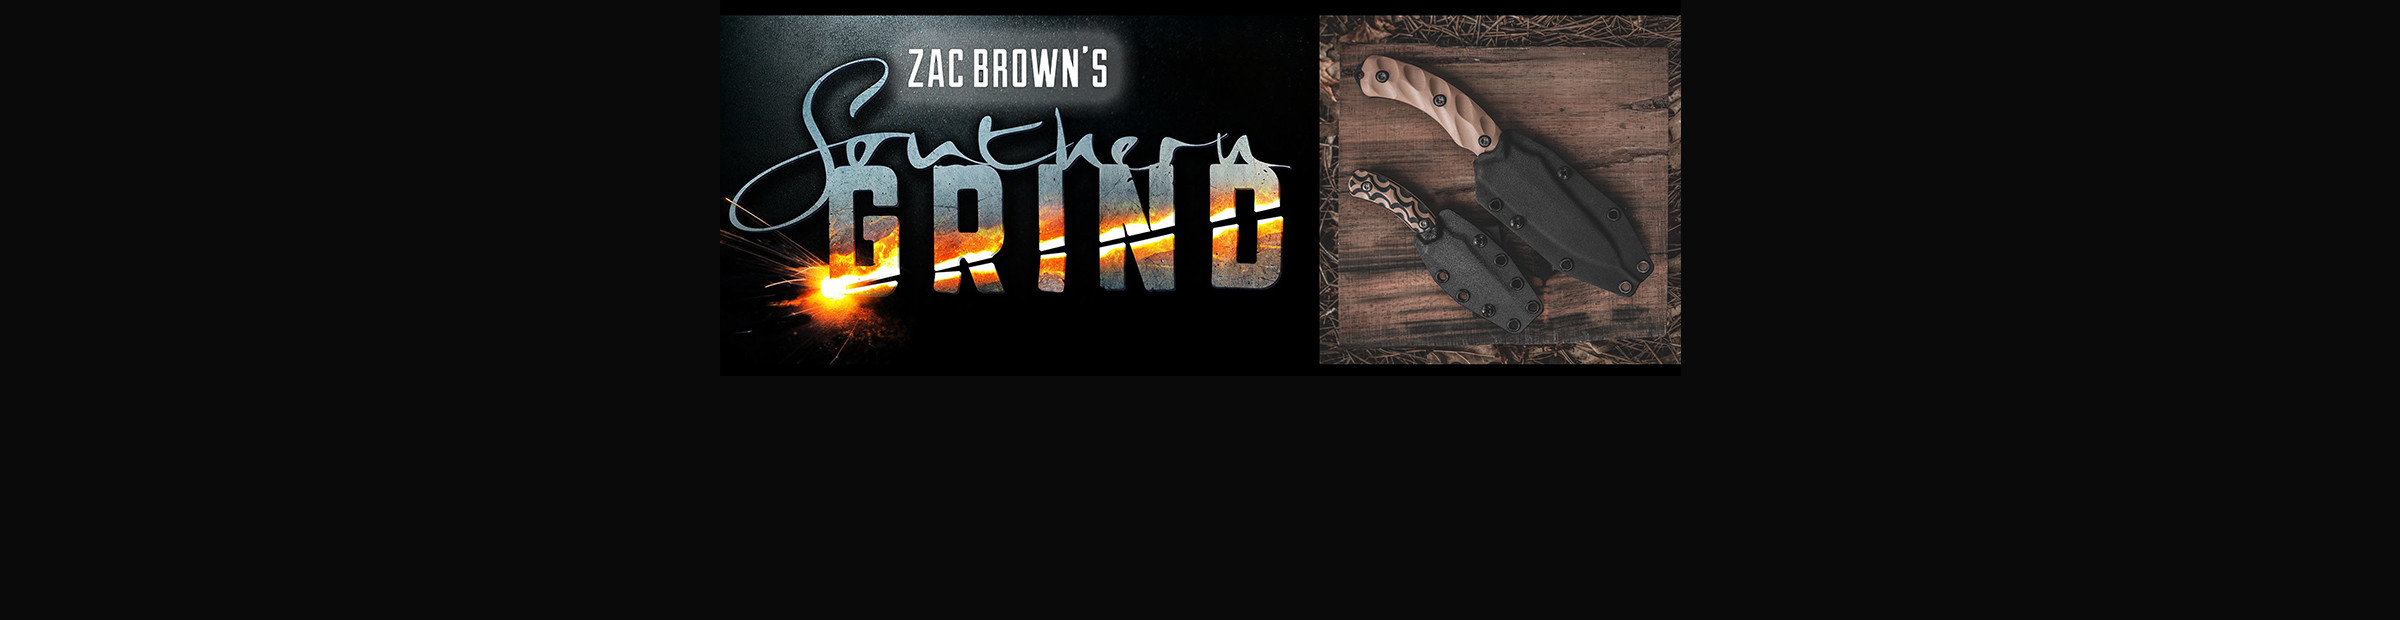 Zac Brown's Southern Grind Knives